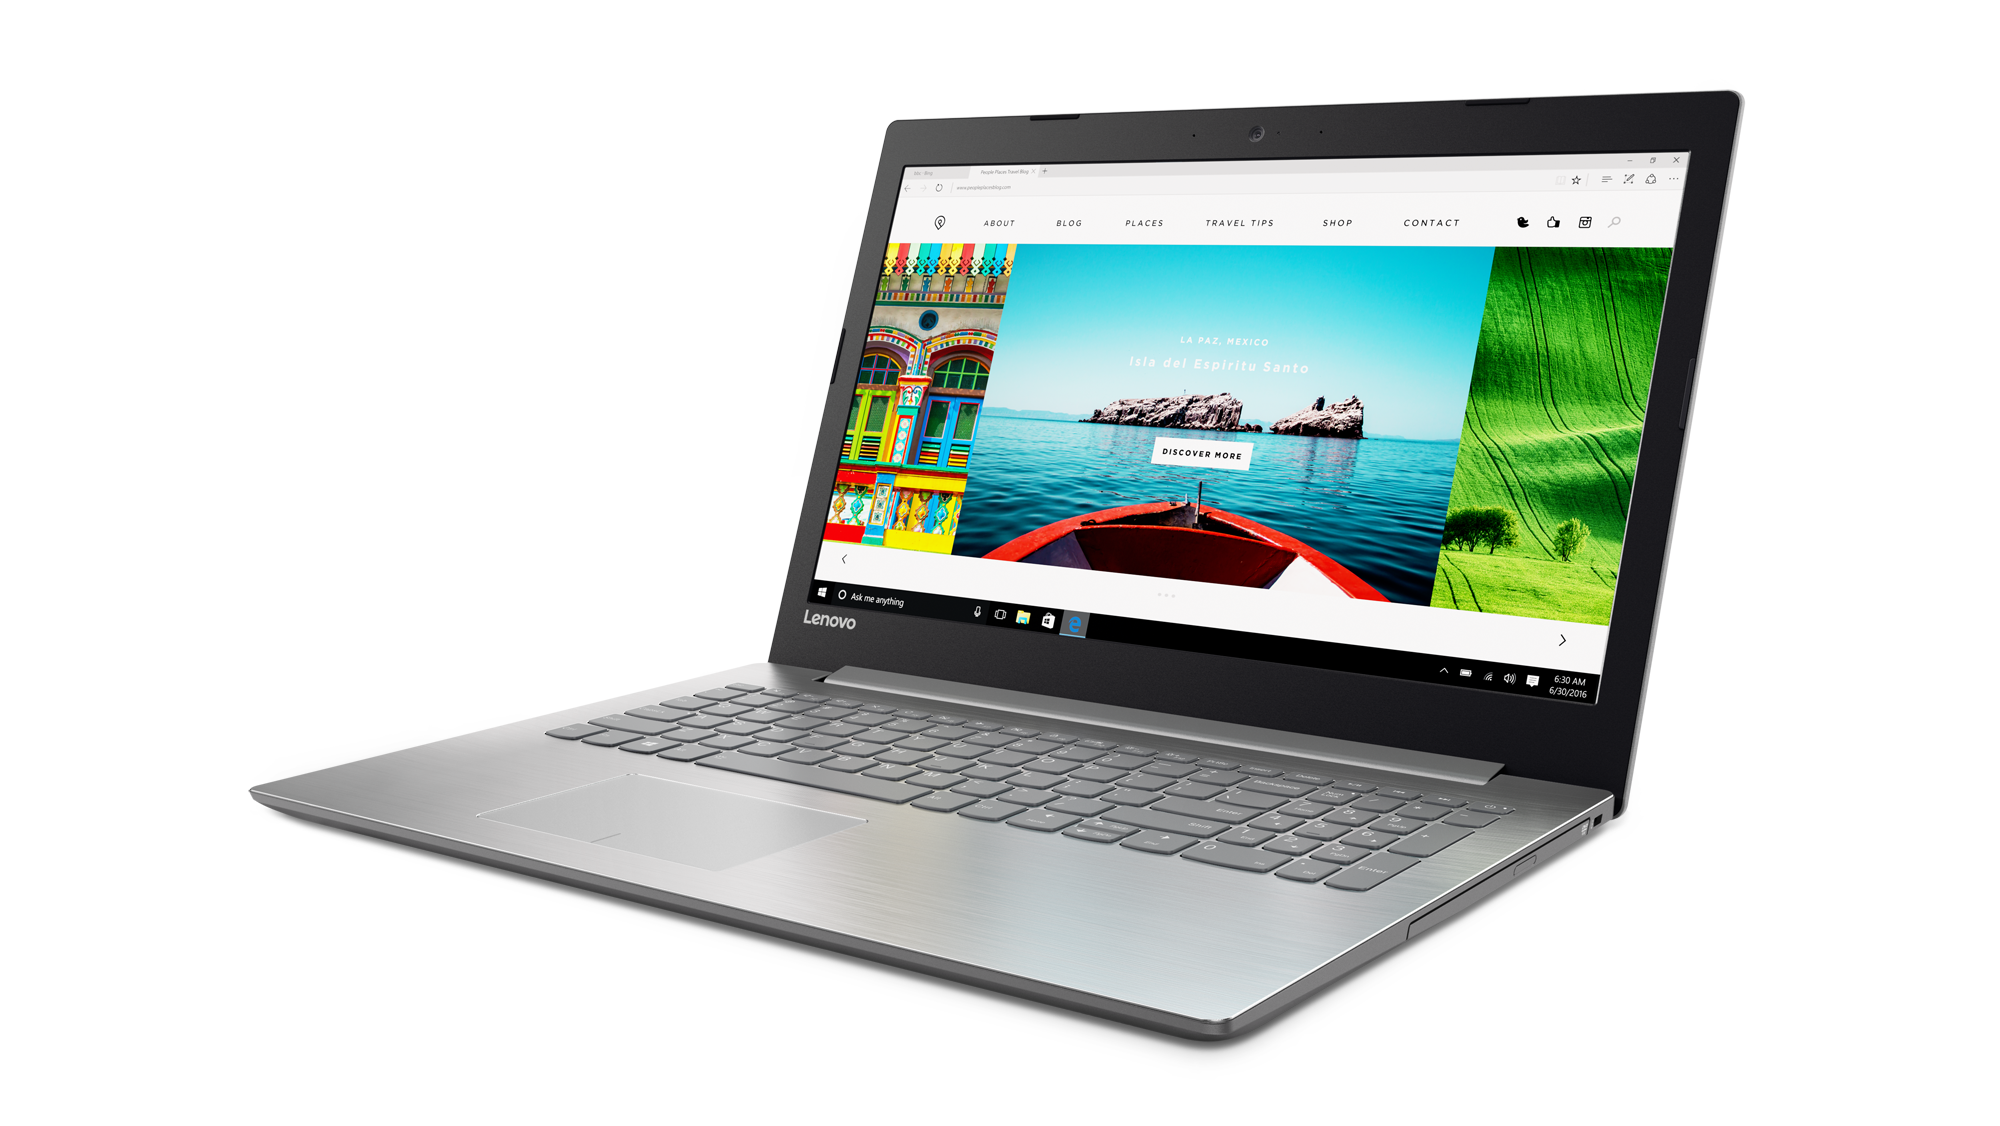 "Lenovo IdeaPad 320-15IKBRN i5-8250U 3,40GHz/8GB/SSD 256GB/15,6"" FHD/AG/GeForce 2GB/WIN10 šedá 81BG000KCK"